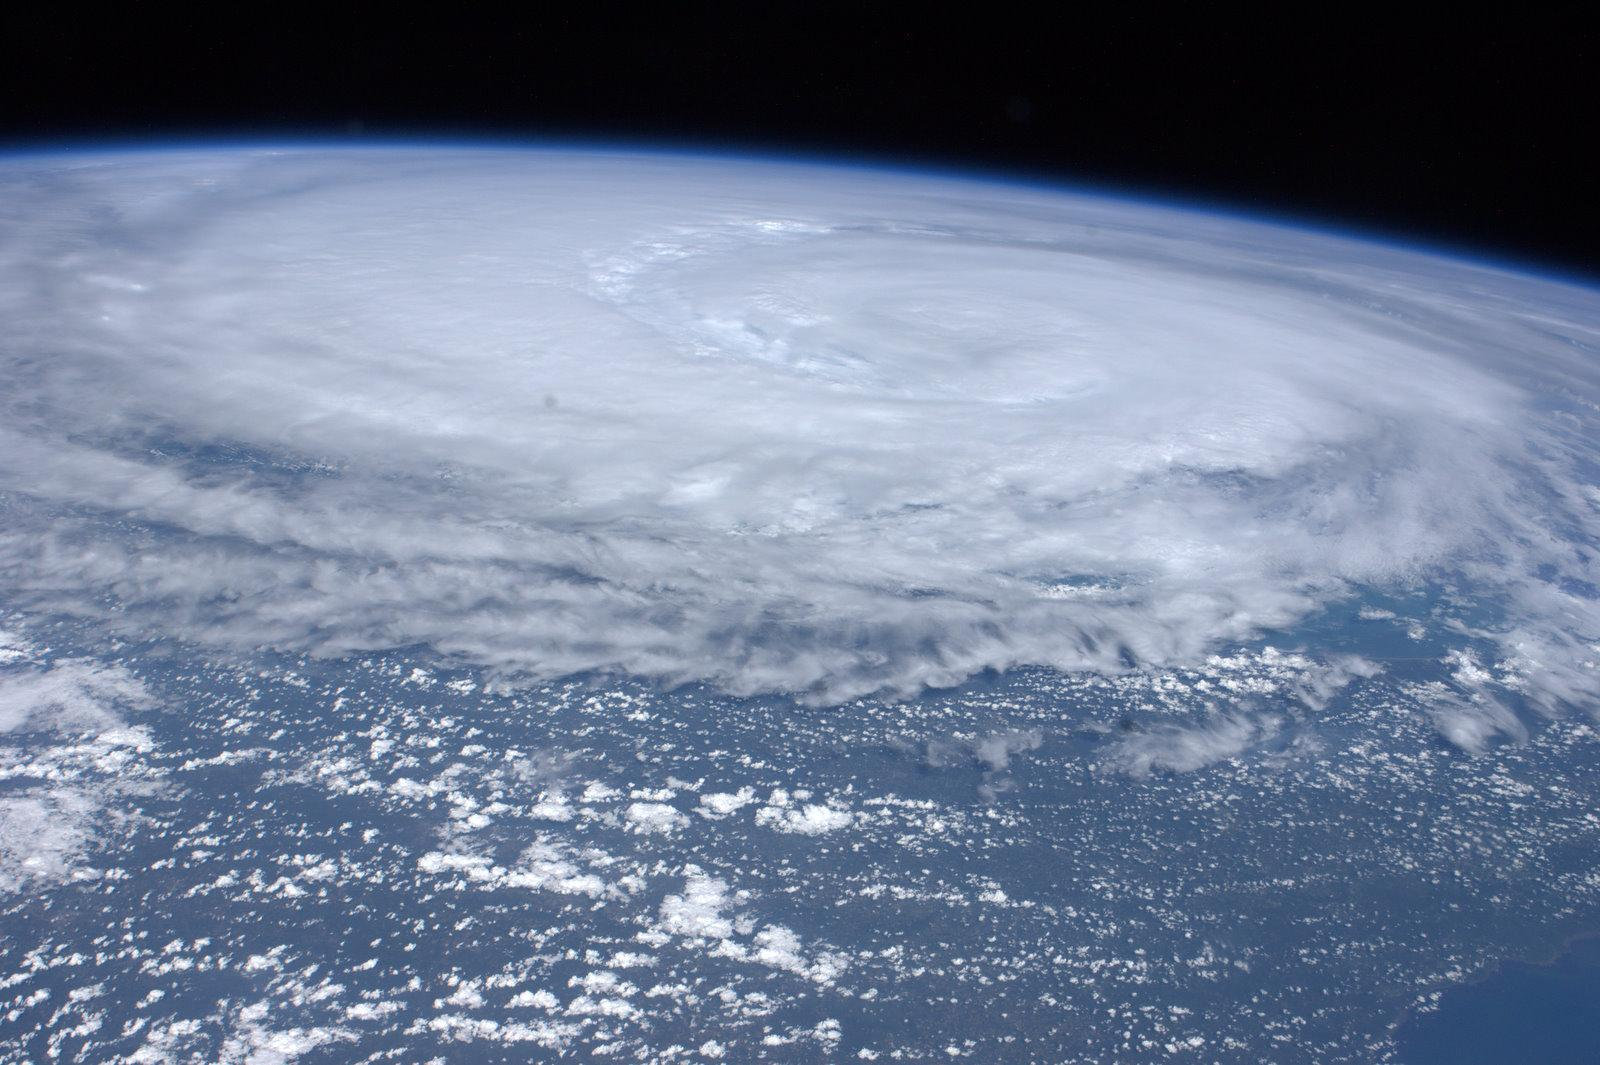 Hurricane Irene from the the International Space Station